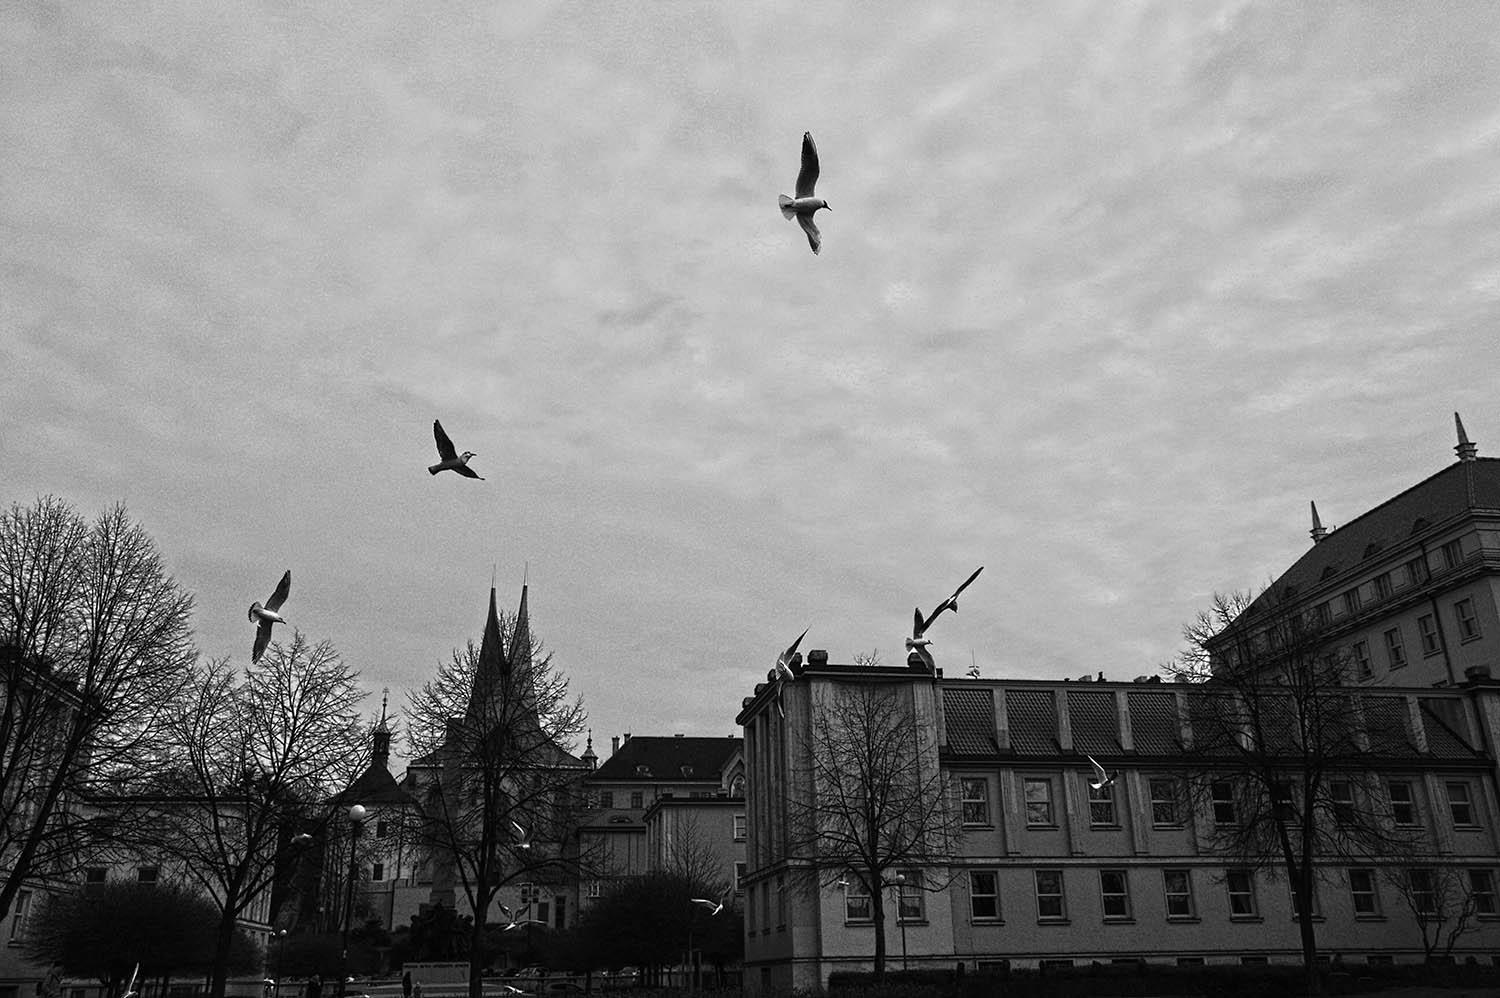 """COVID-19 SERIES, III.  """"No one in the outside world except these lonely birds"""", Prague, Czech Republic, 2020."""